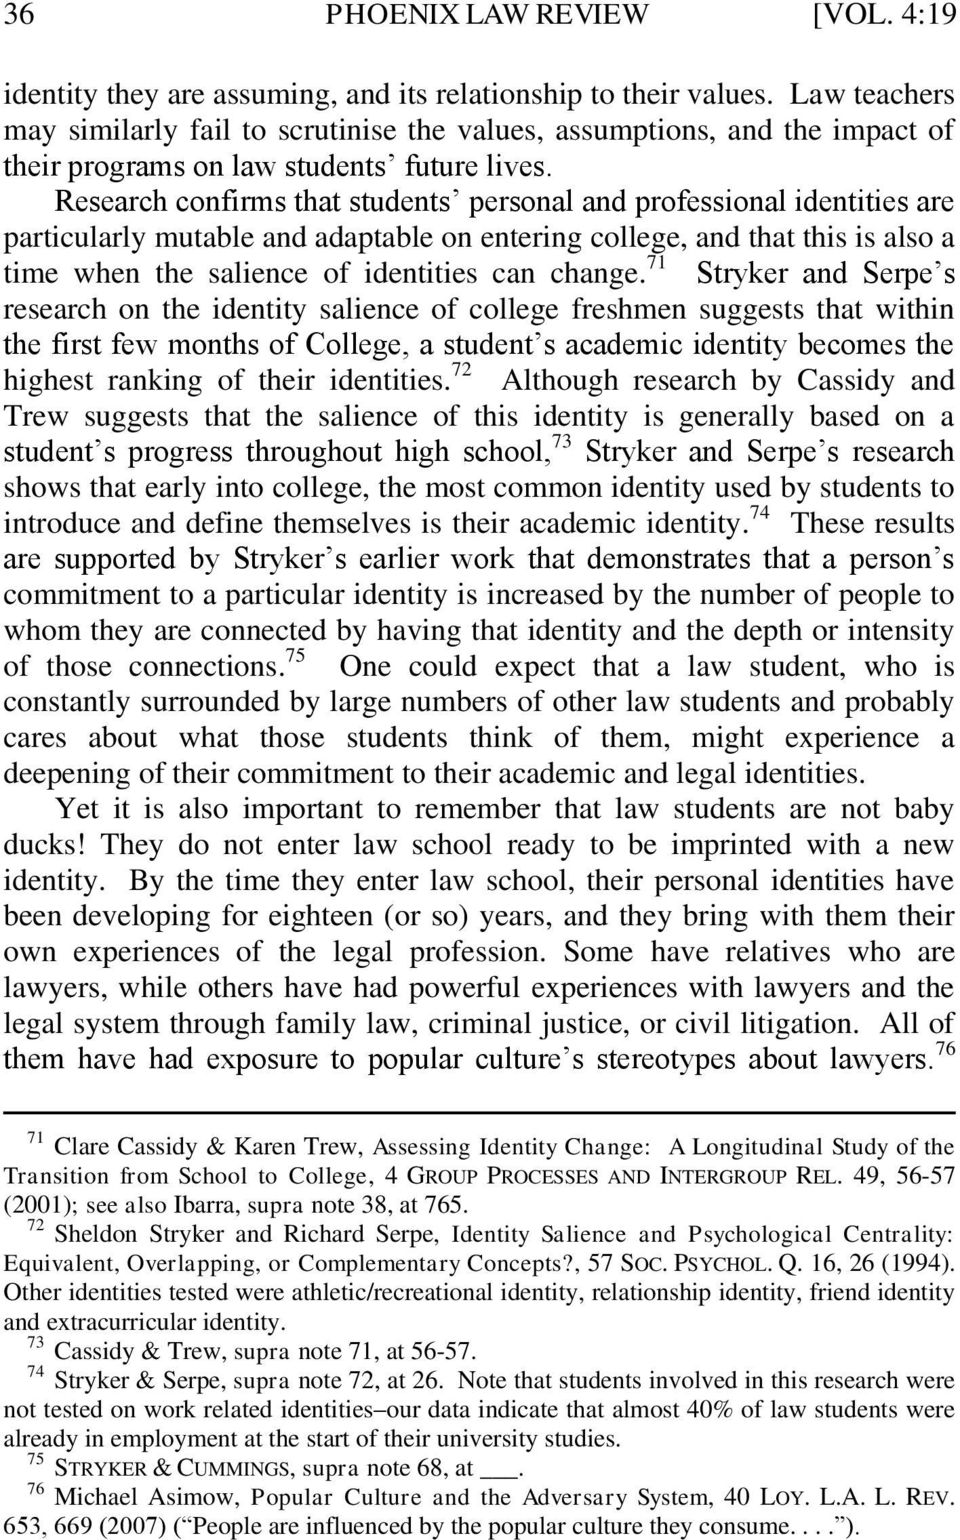 Research confirms that students personal and professional identities are particularly mutable and adaptable on entering college, and that this is also a time when the salience of identities can